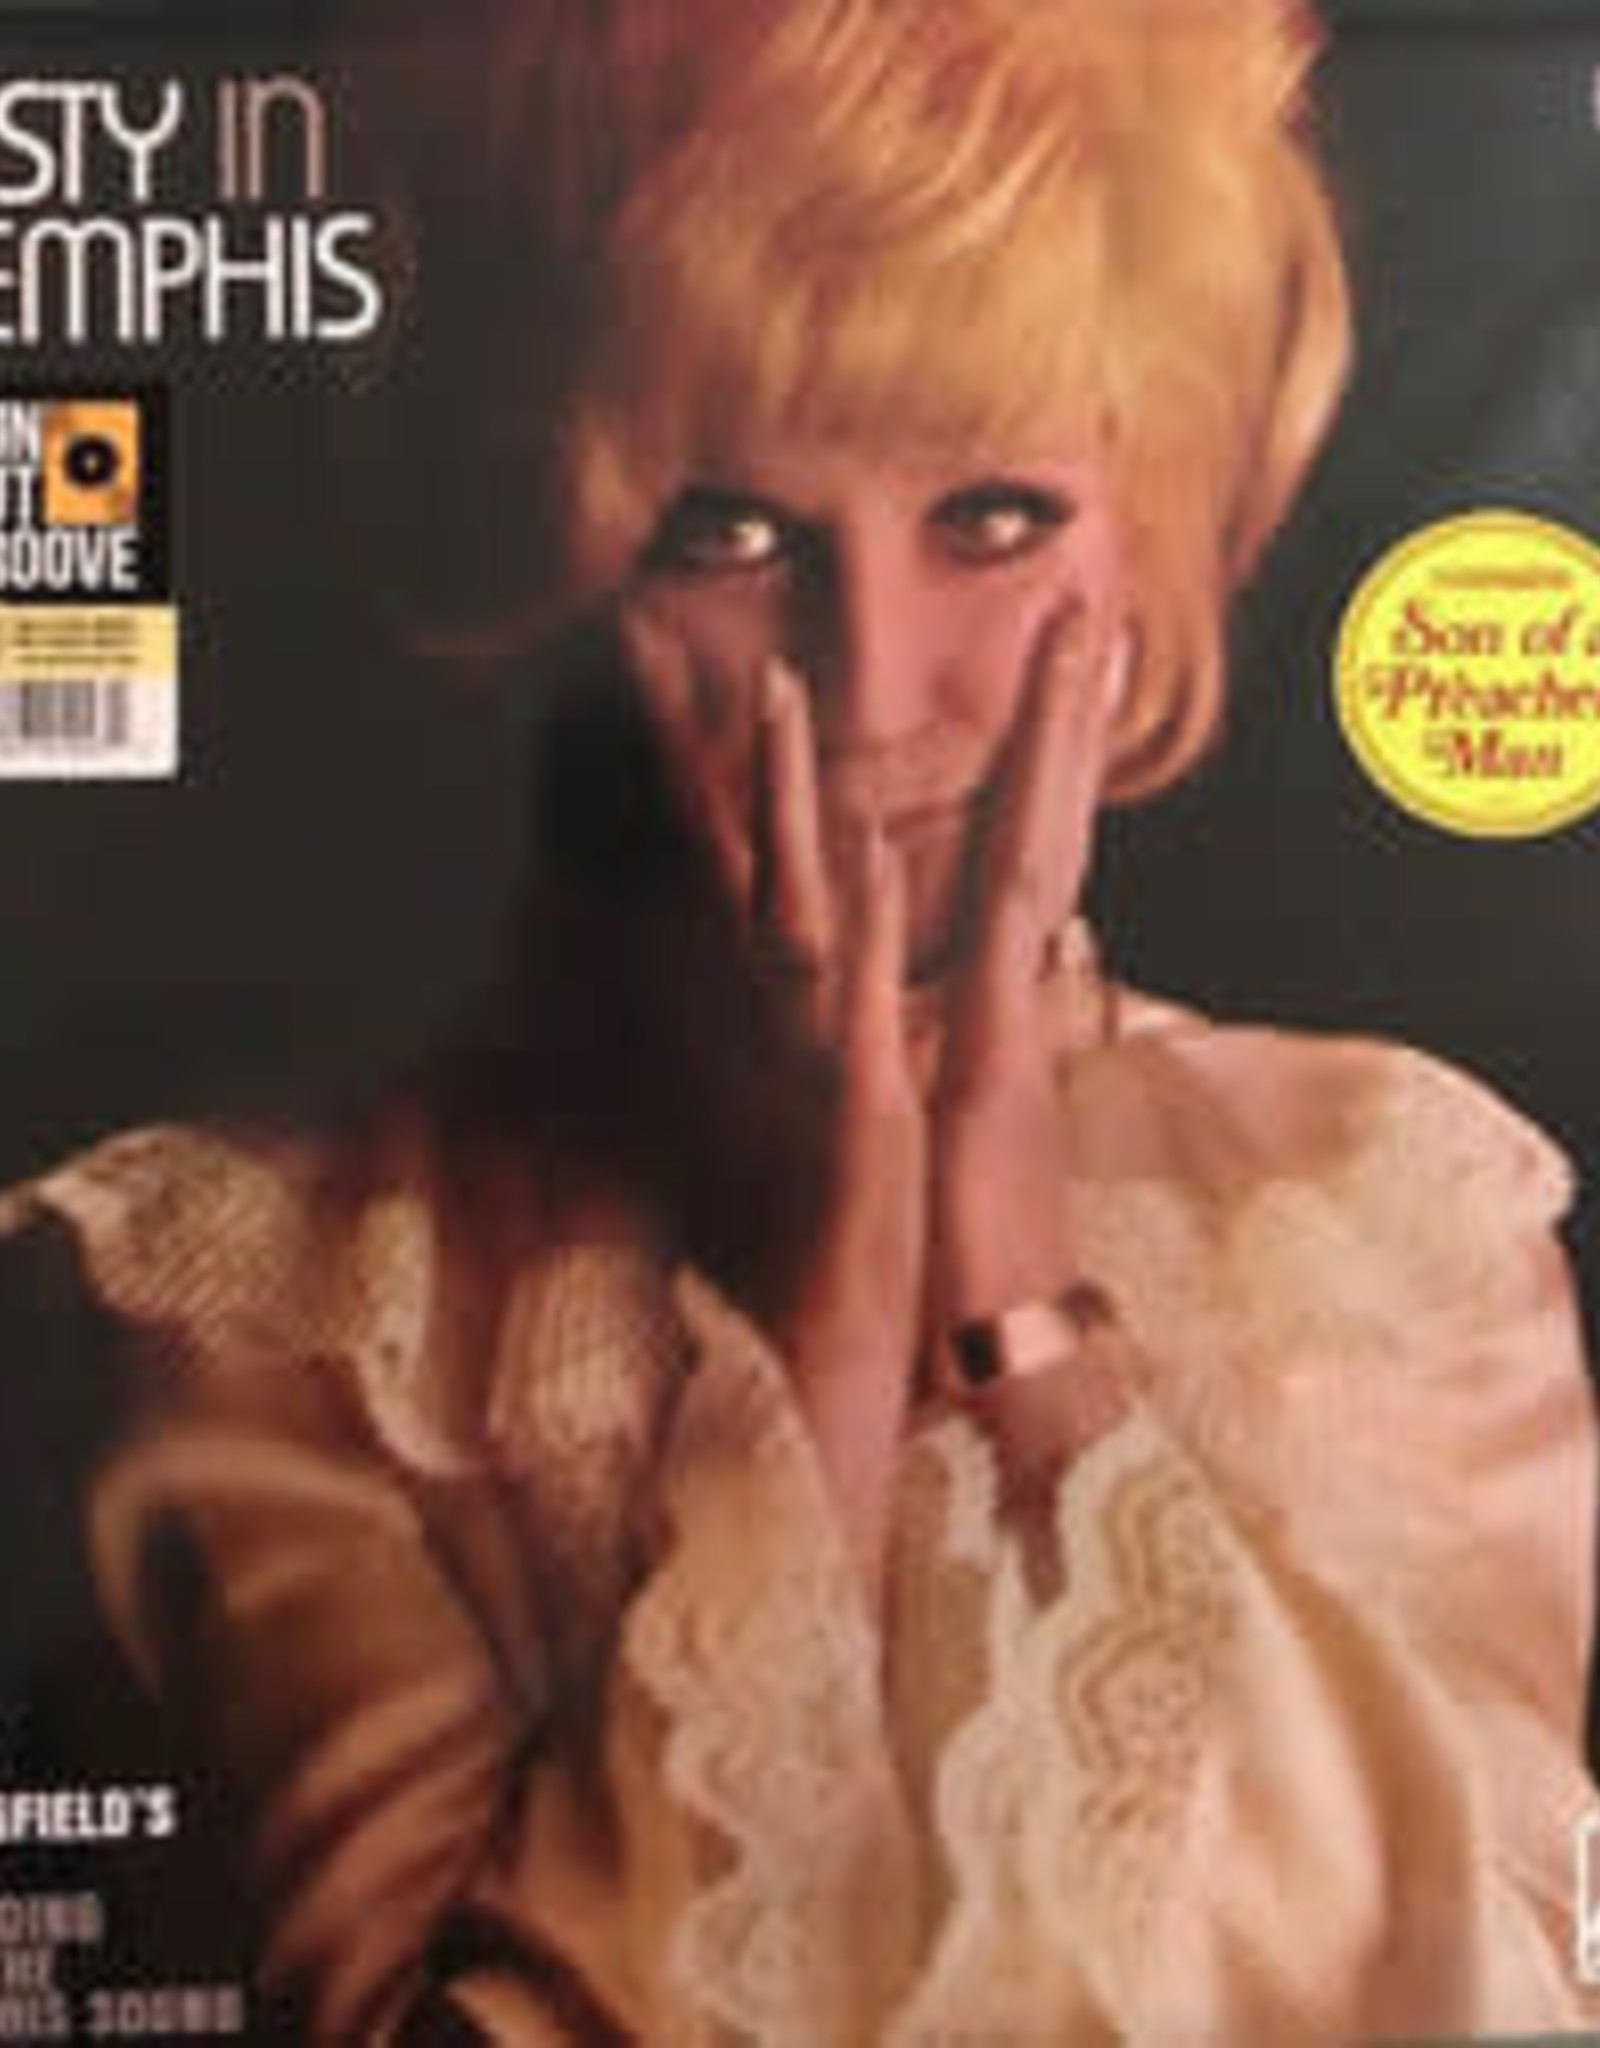 Dusty Springfield - Dusty In Memphis (Bonus Tracks, 180 Gram Vinyl, Deluxe Edition, Gatefold LP Jacket, Limited Edition)